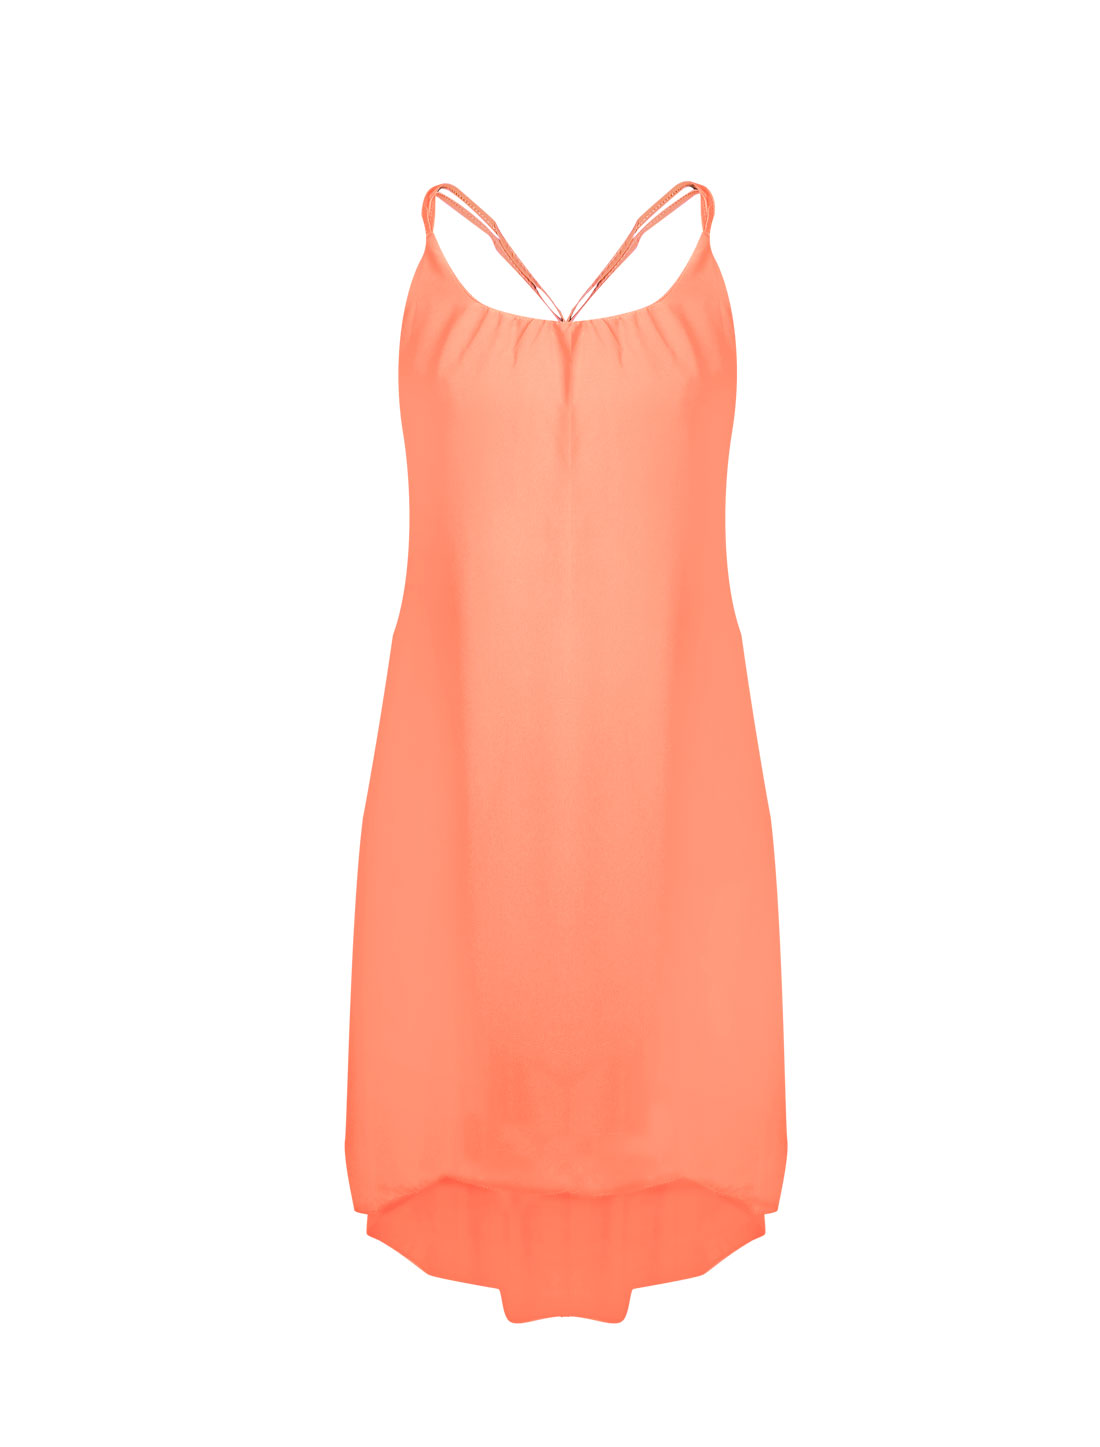 Women Sleeveless Strappy Cami Back Full Lined Chiffon Dress Salmon S